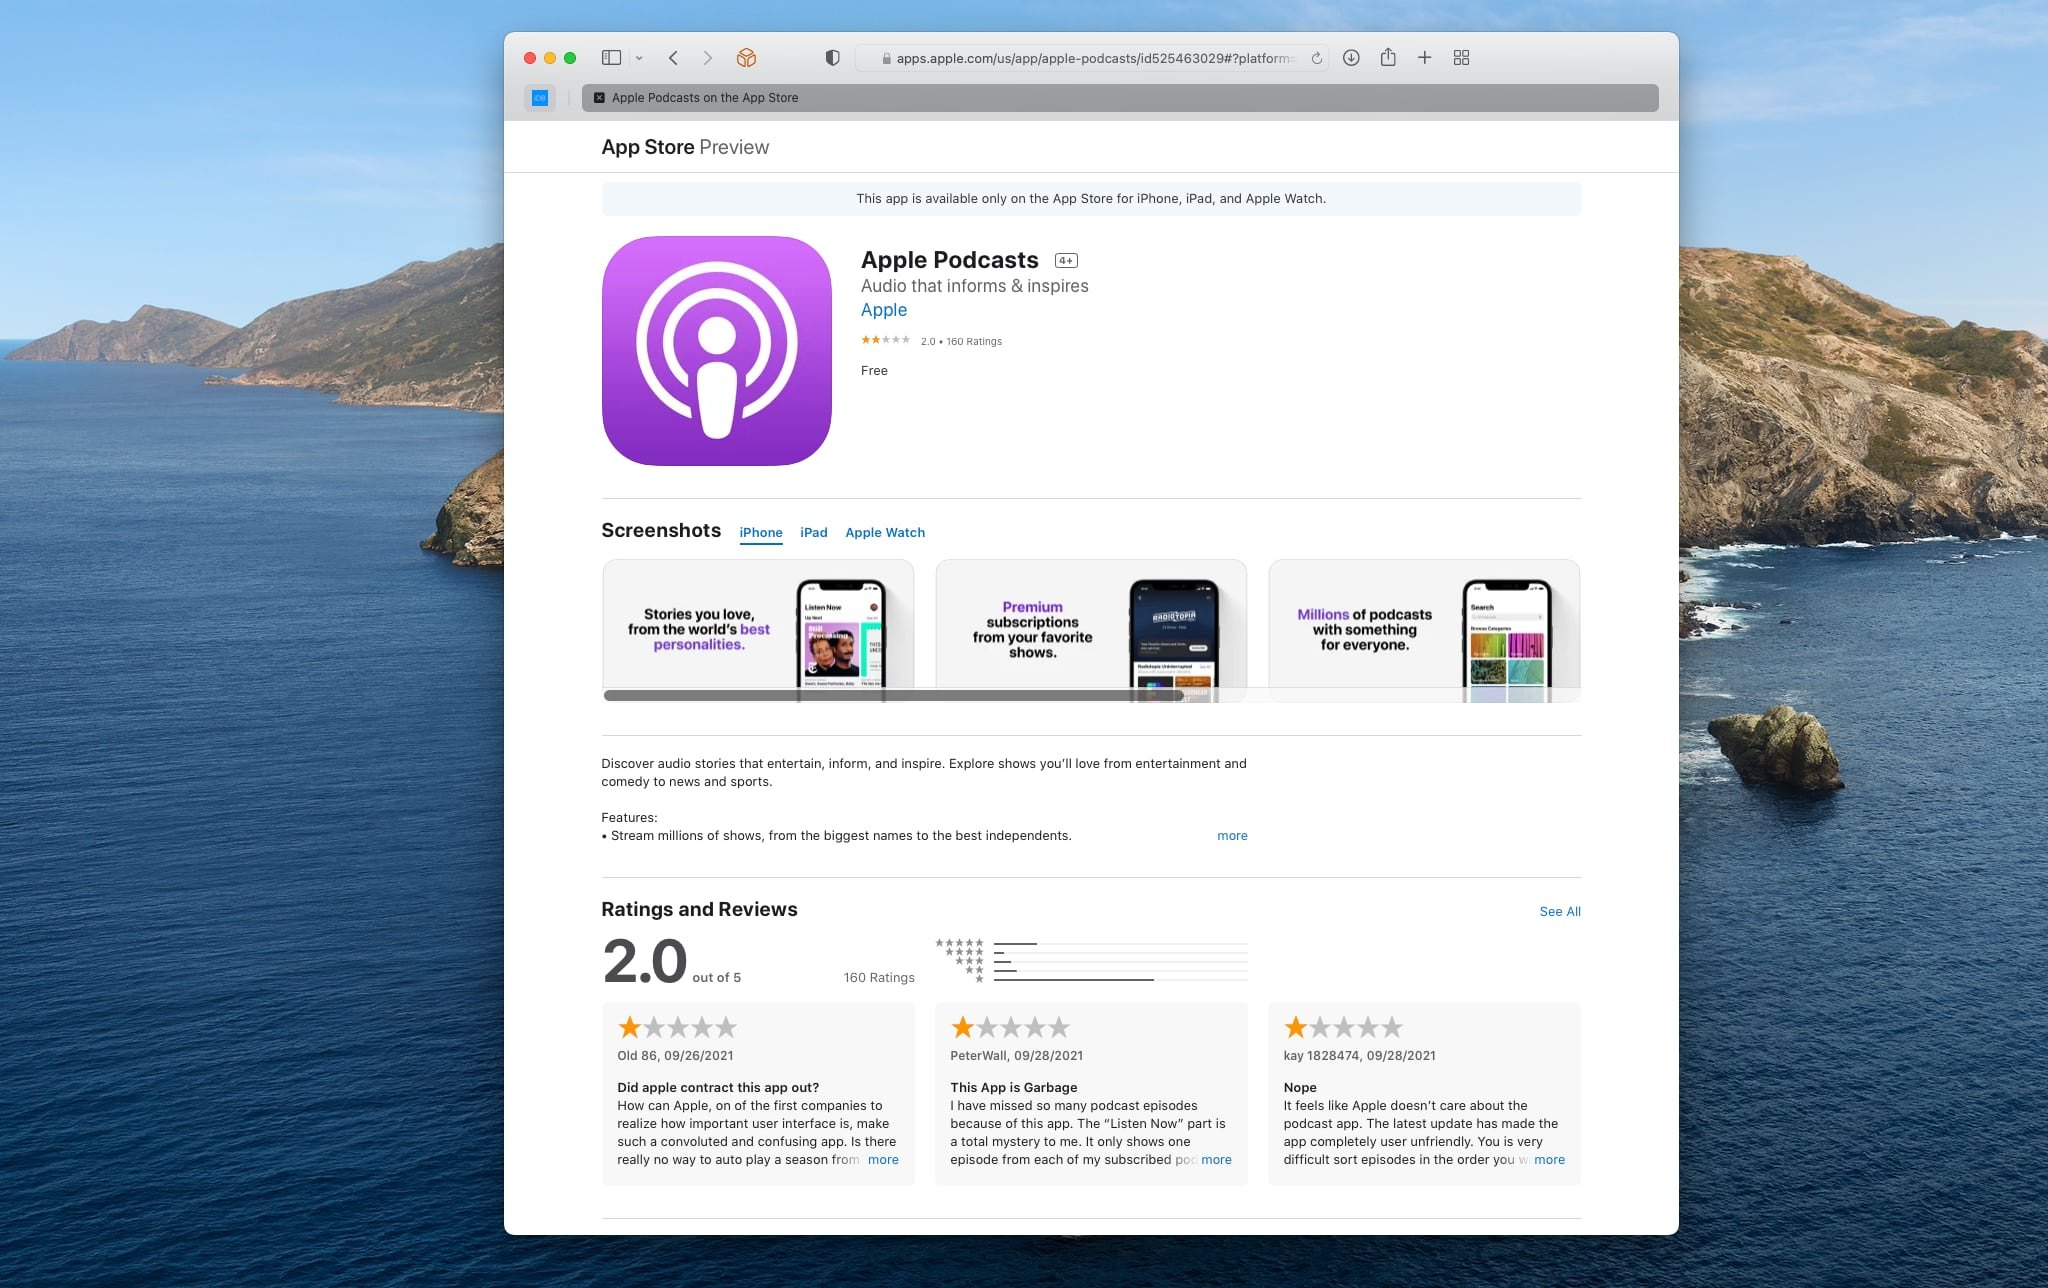 A Safari screenshot showing an App Store web preview of the Podcasts app for iPhone and iPad with negative reviews and low ratings